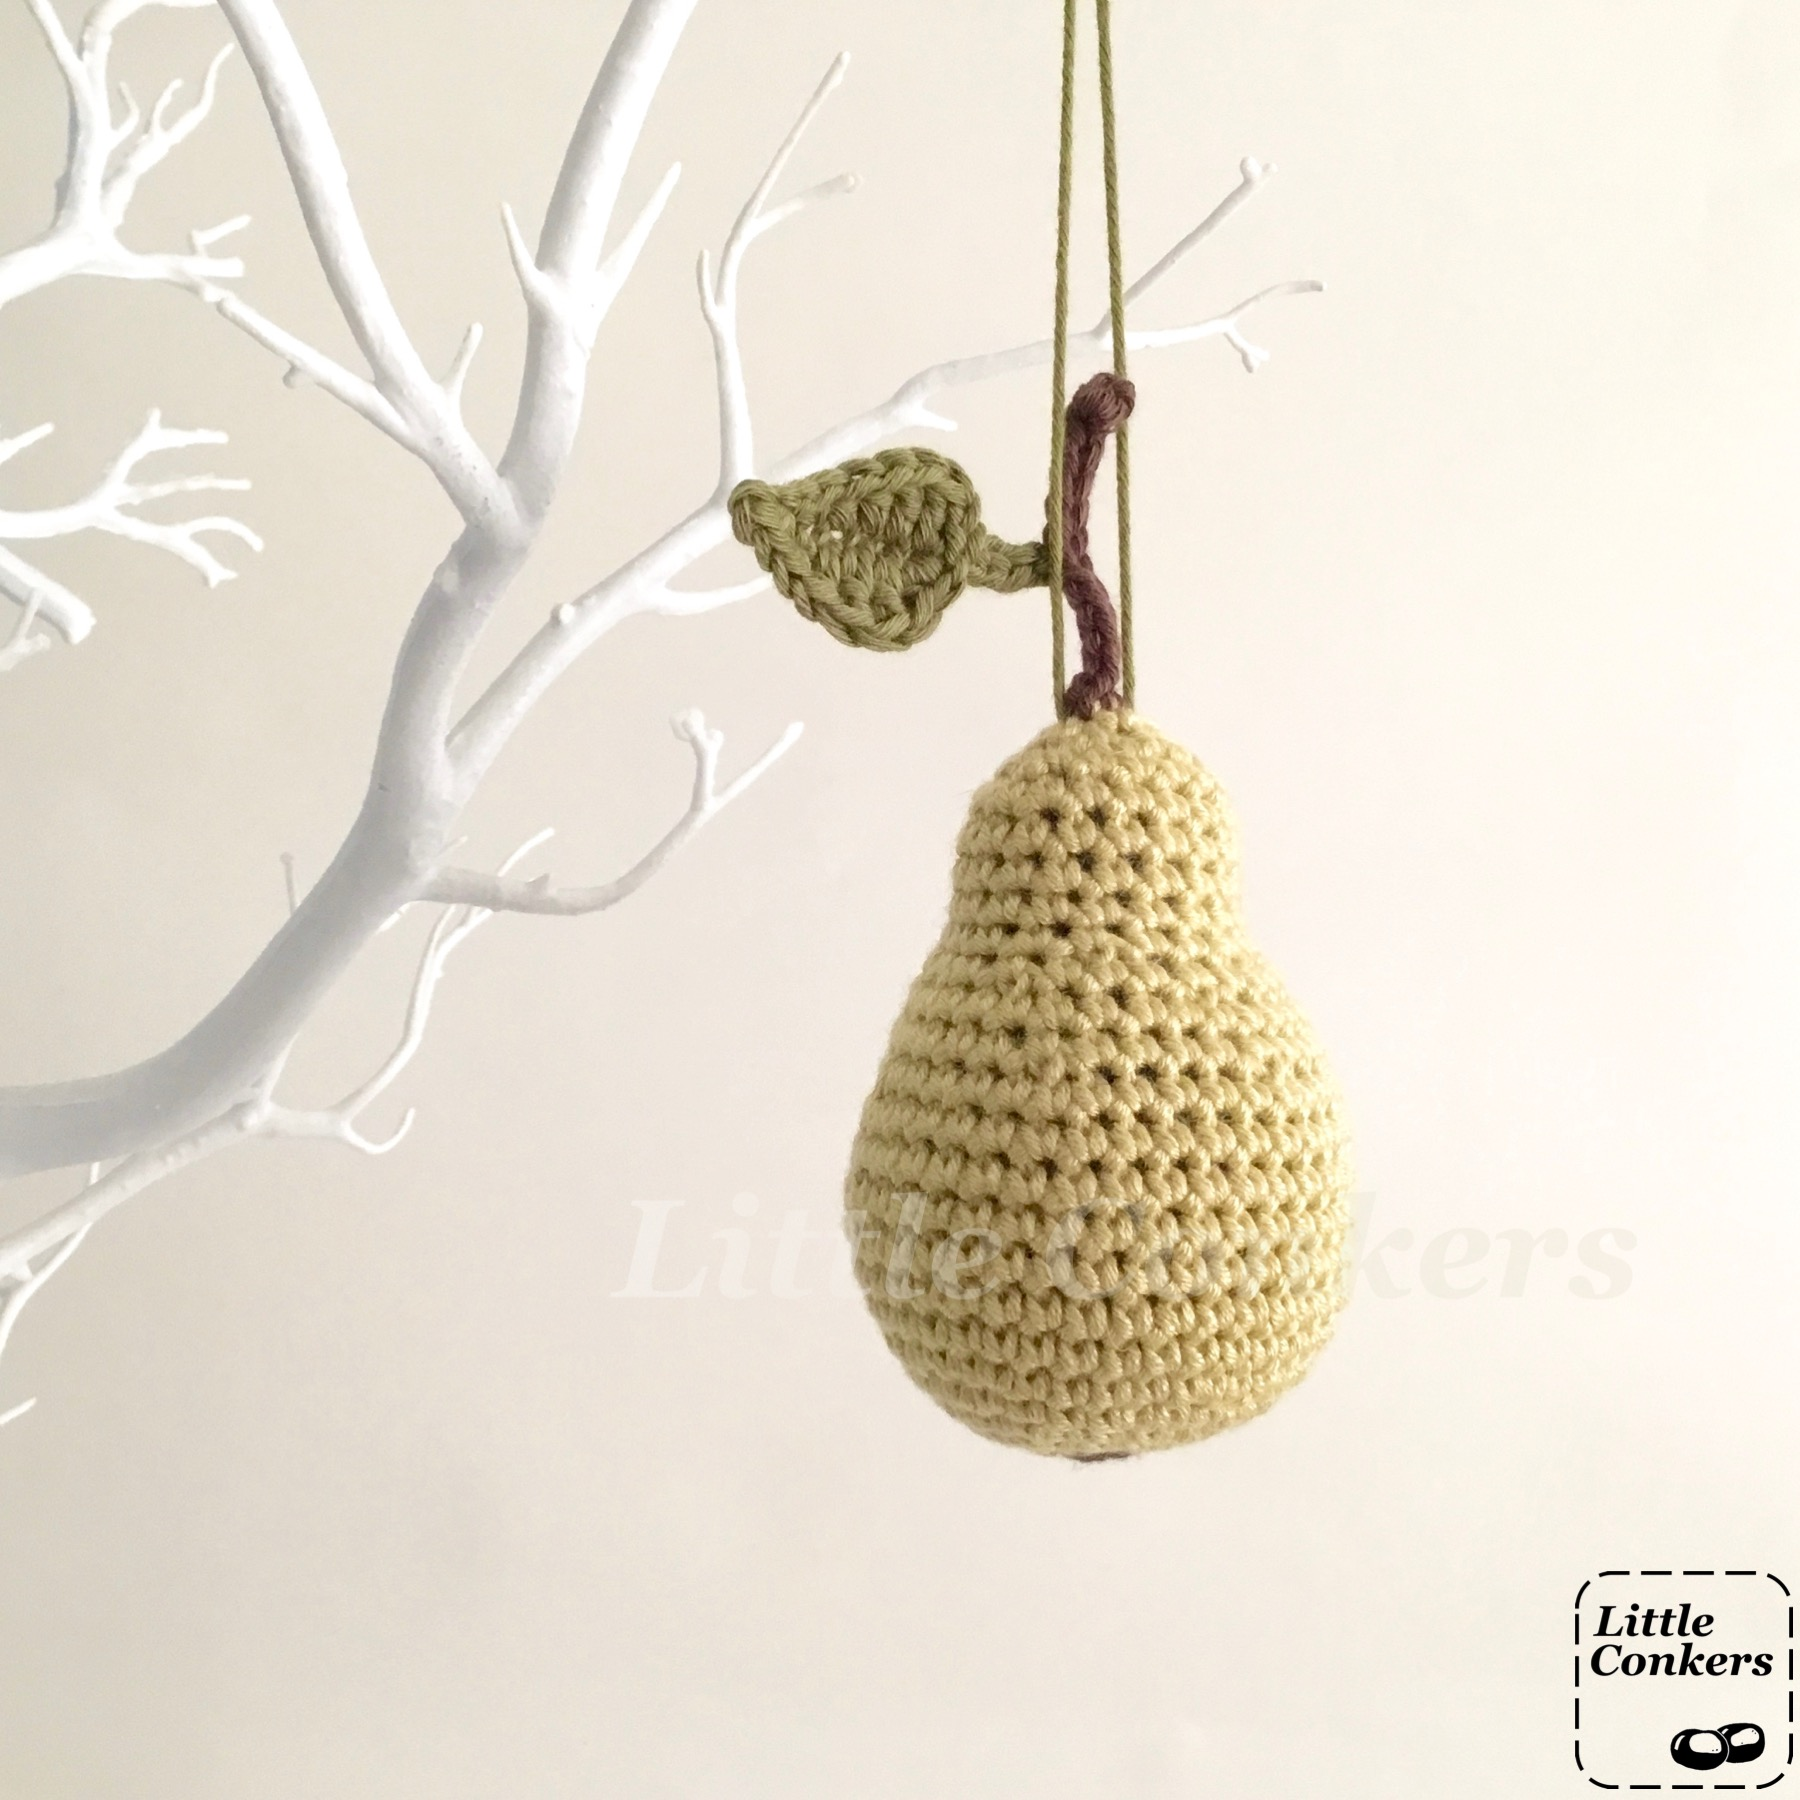 Hanging Pear Ornaments